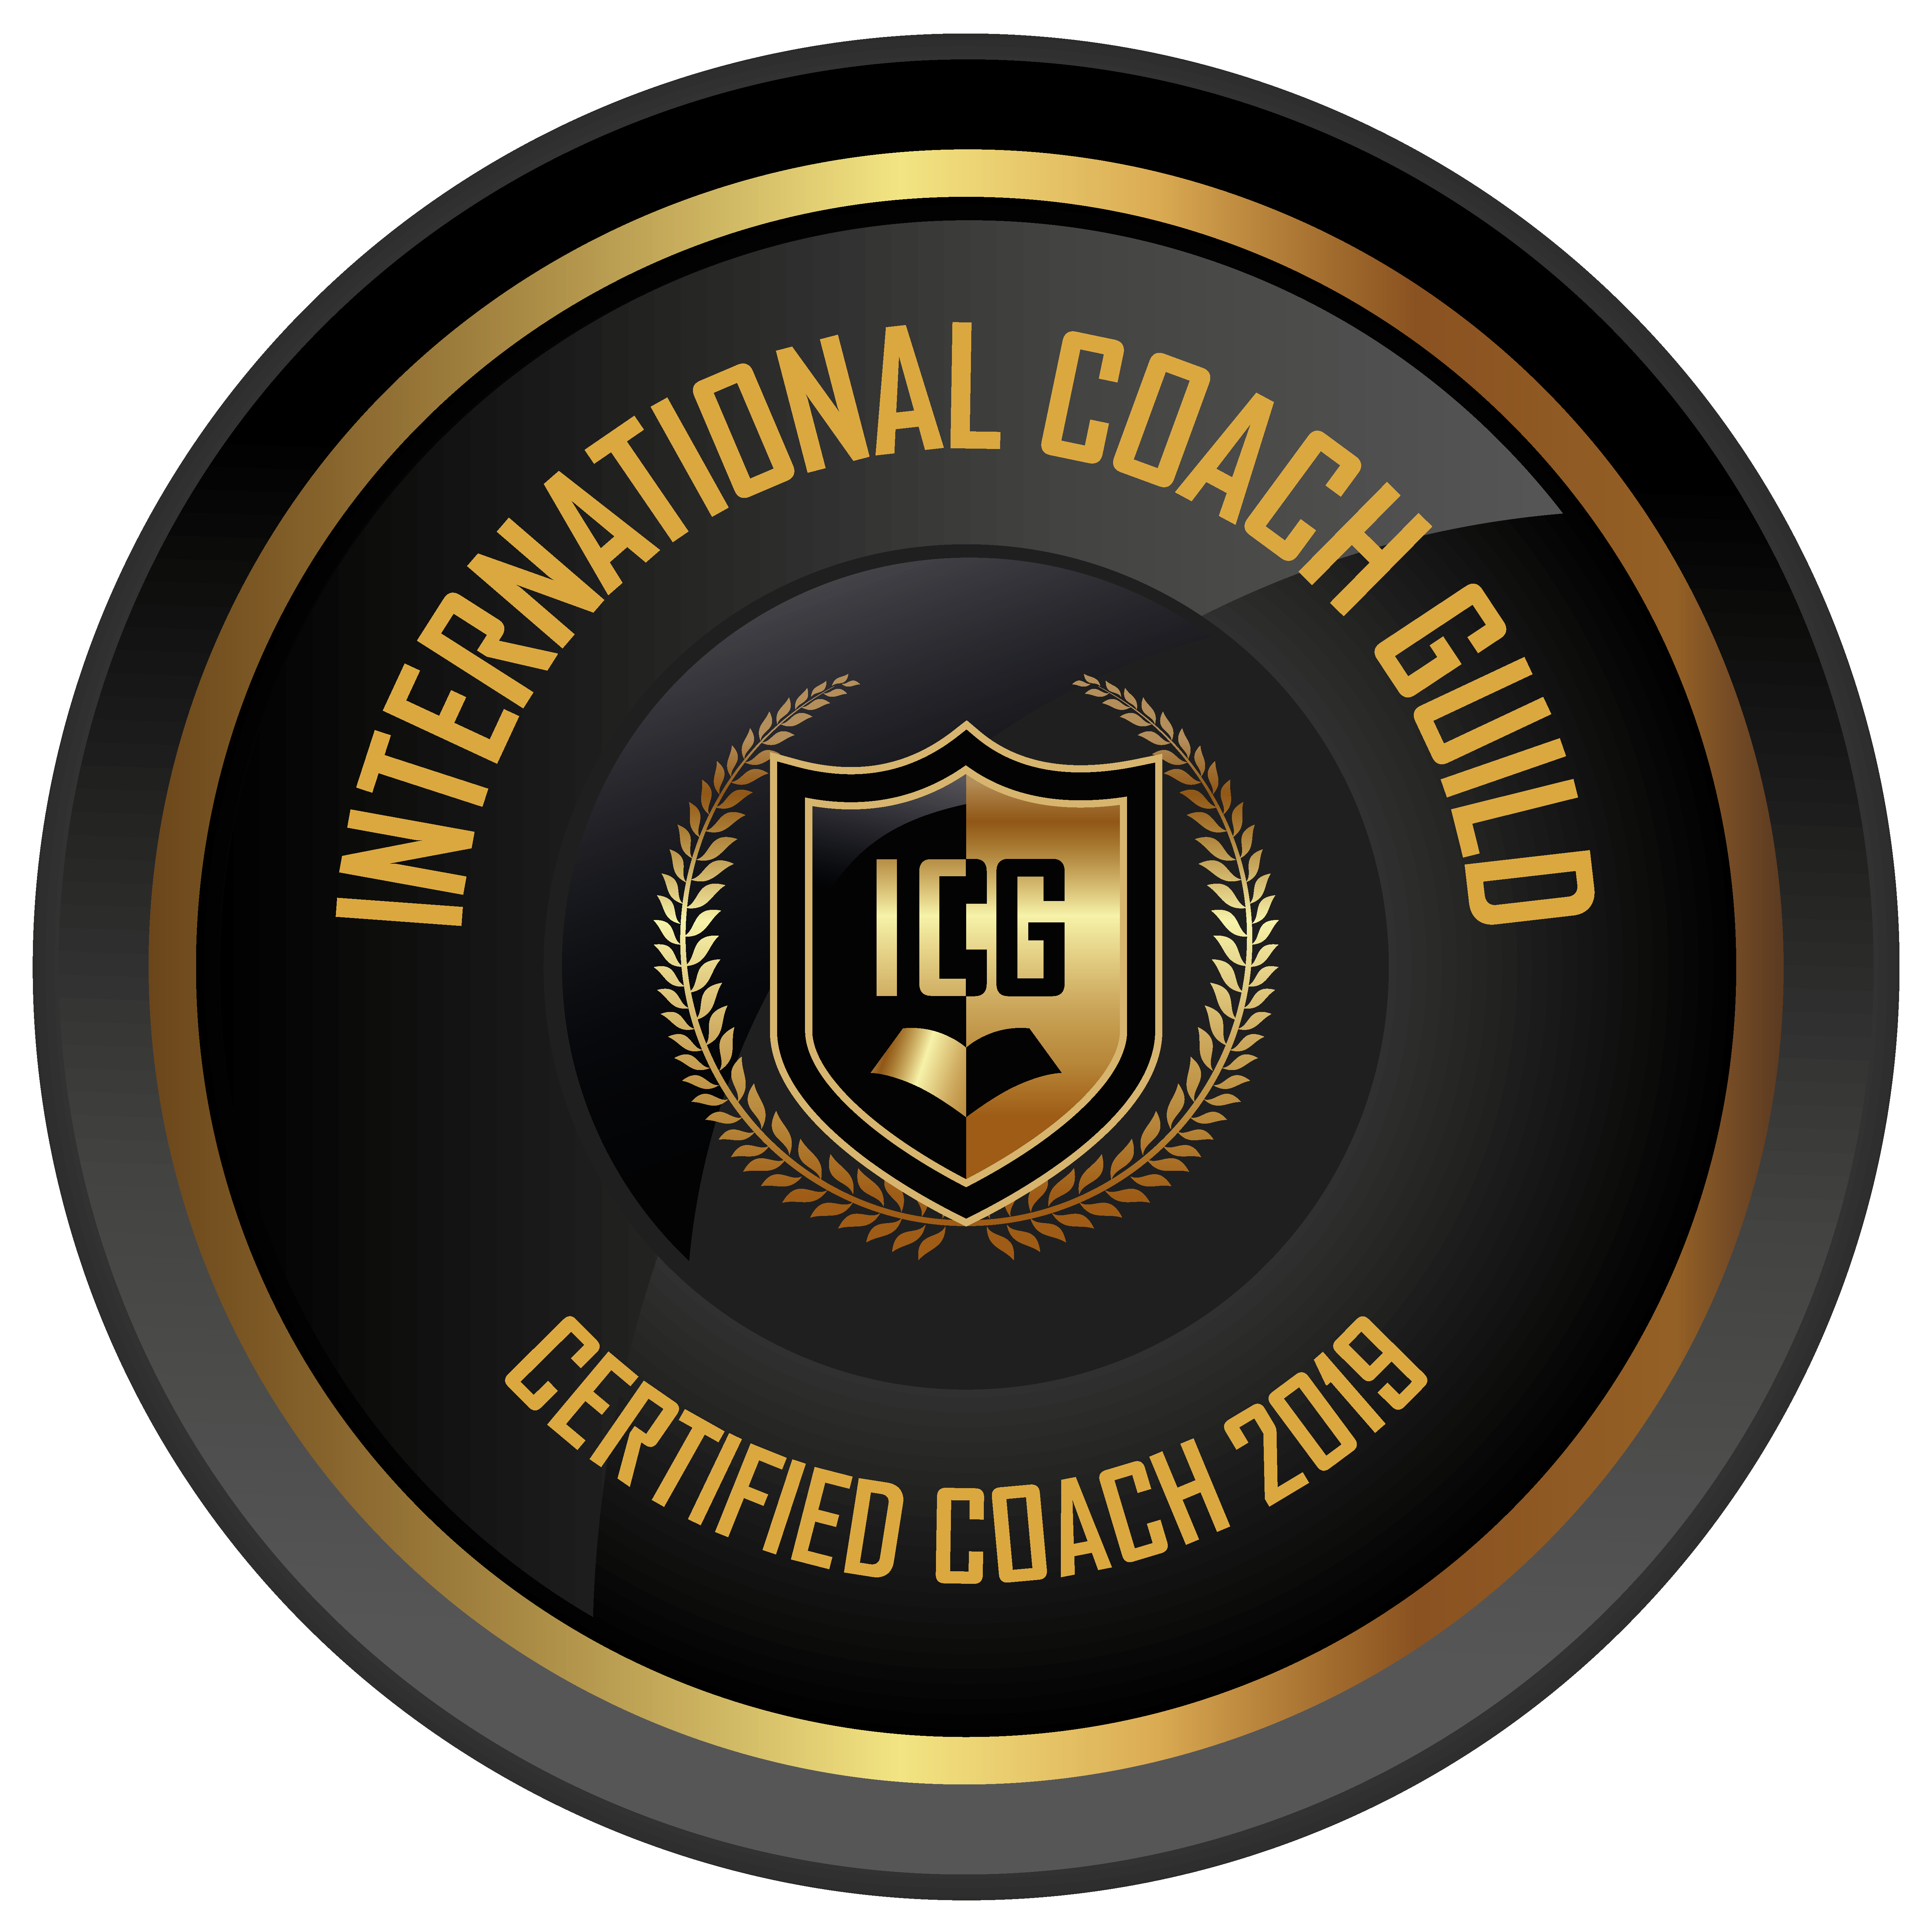 ICG Certified Coach 2019 large